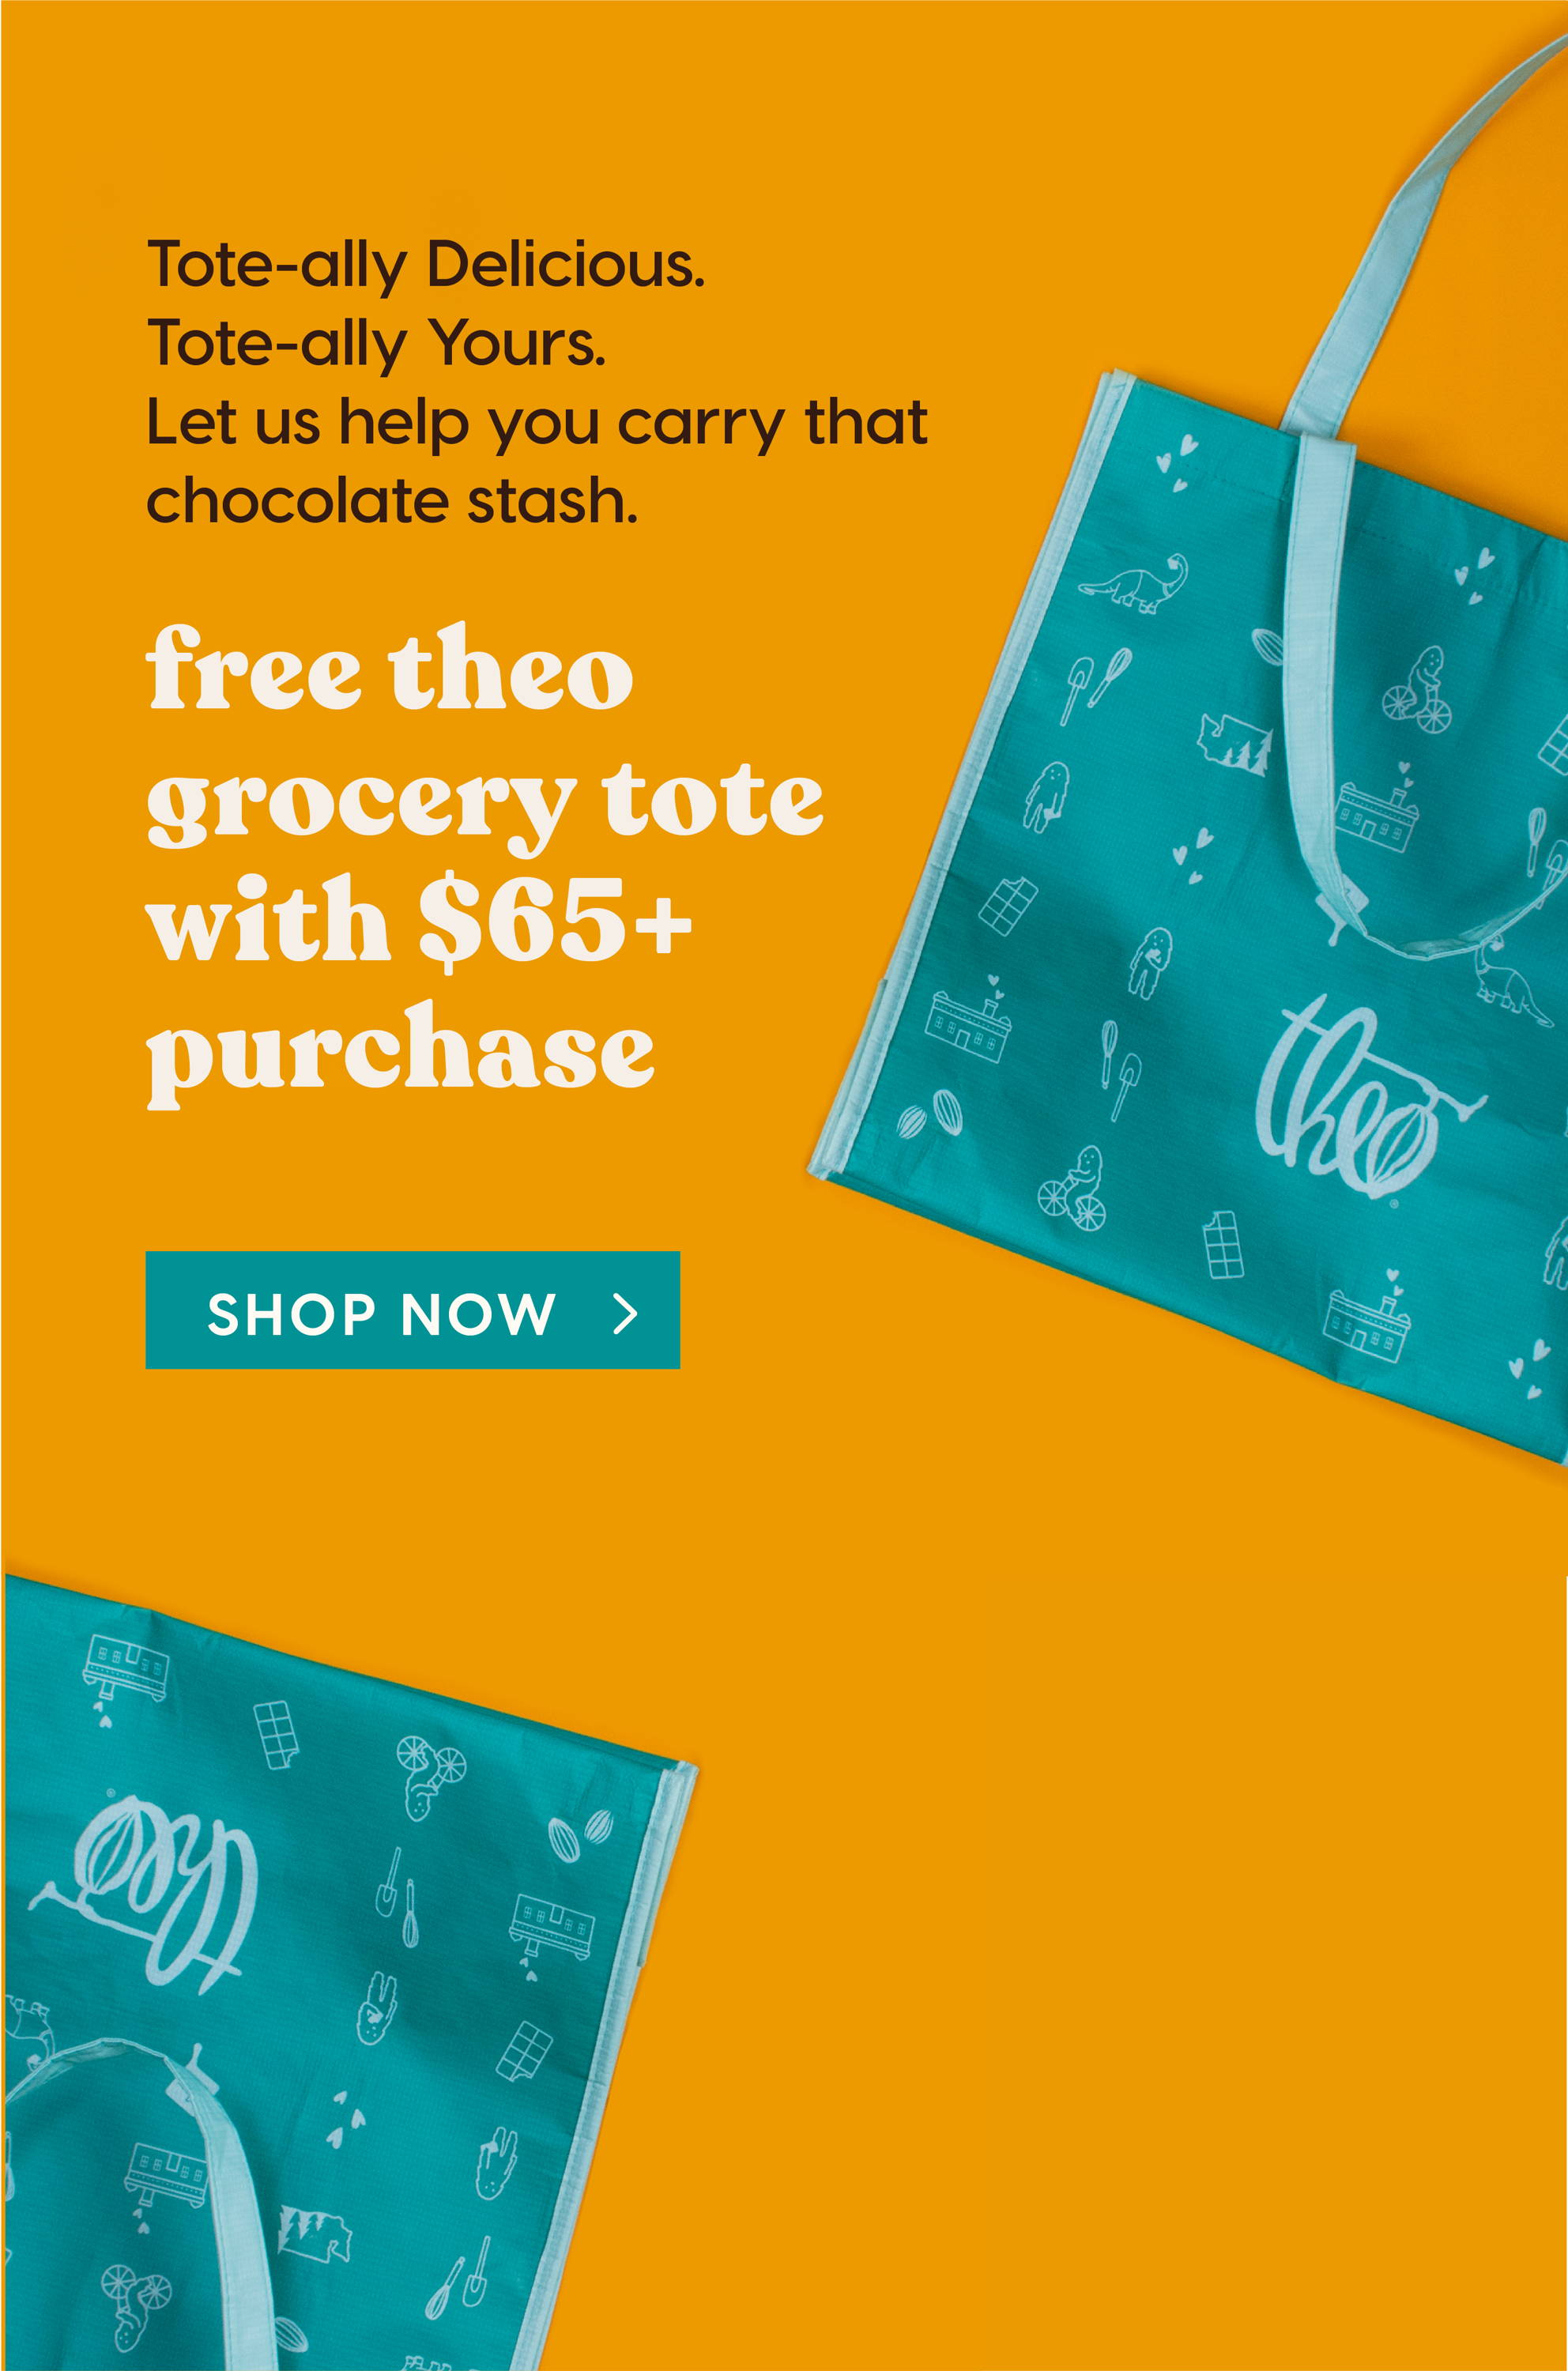 Free Theo Grocery Tote on $65+